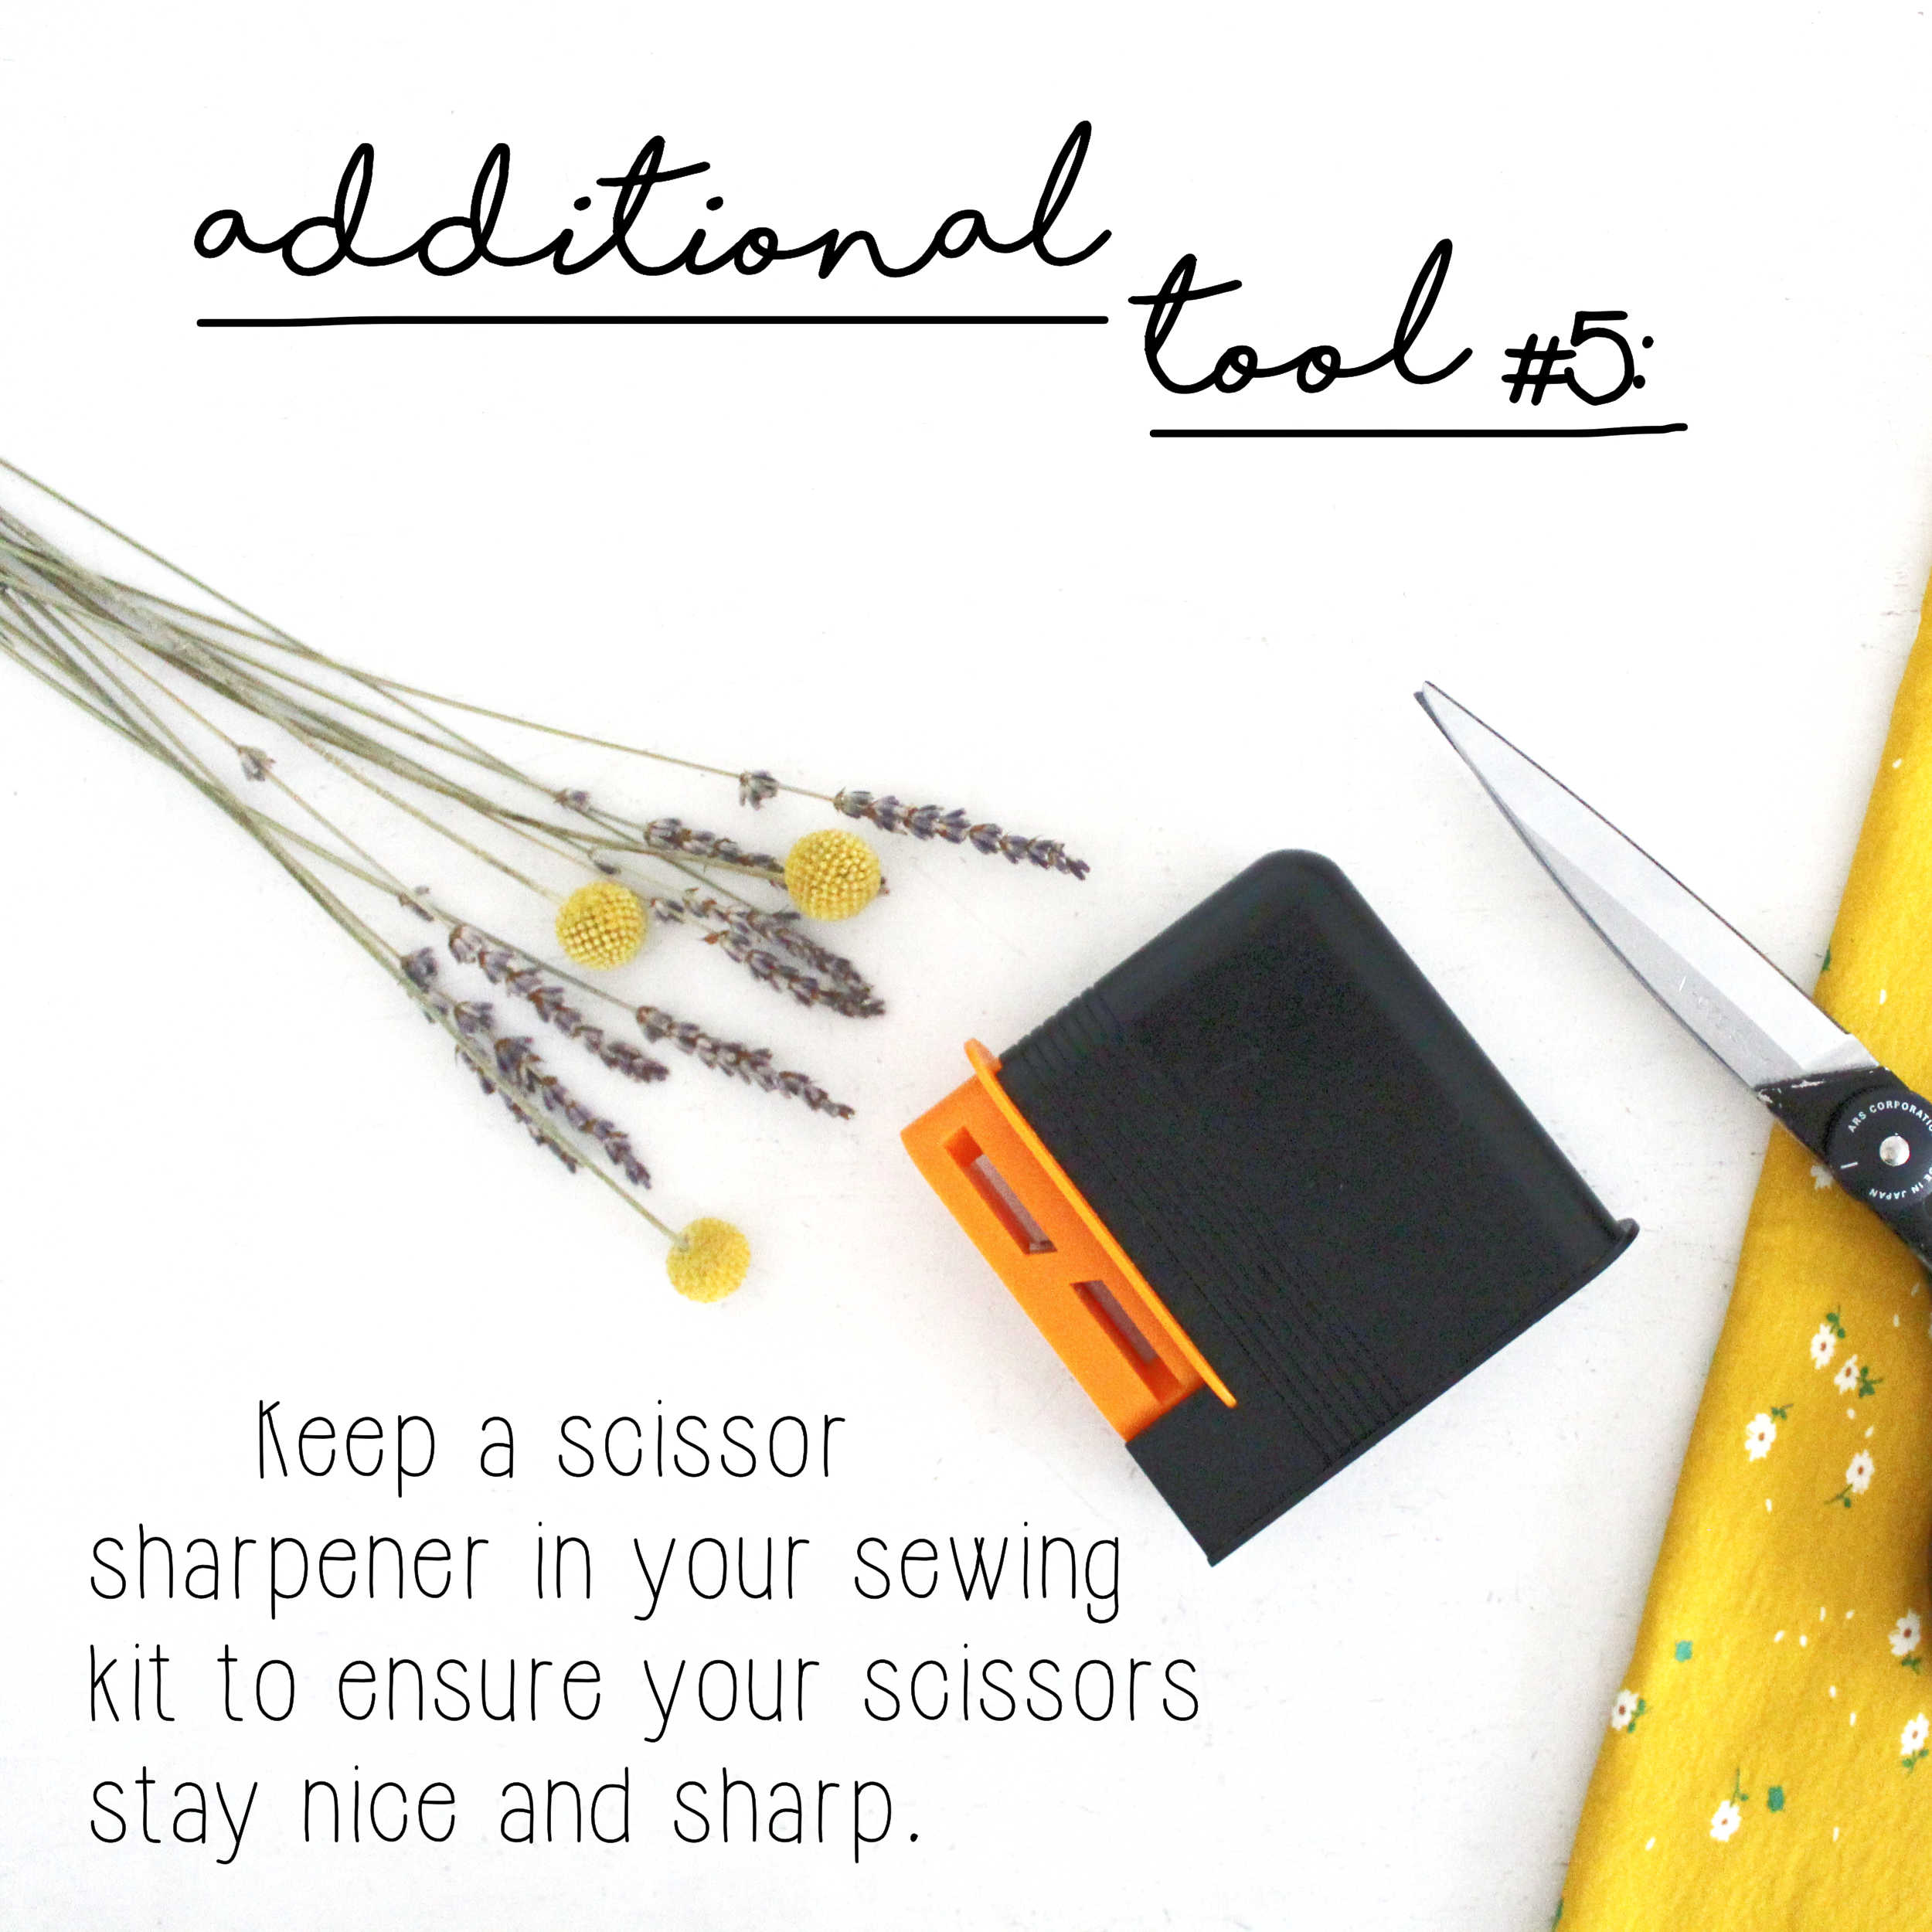 How To Build A Sewing Kit: Additional Tool #5, Scissor Sharpener